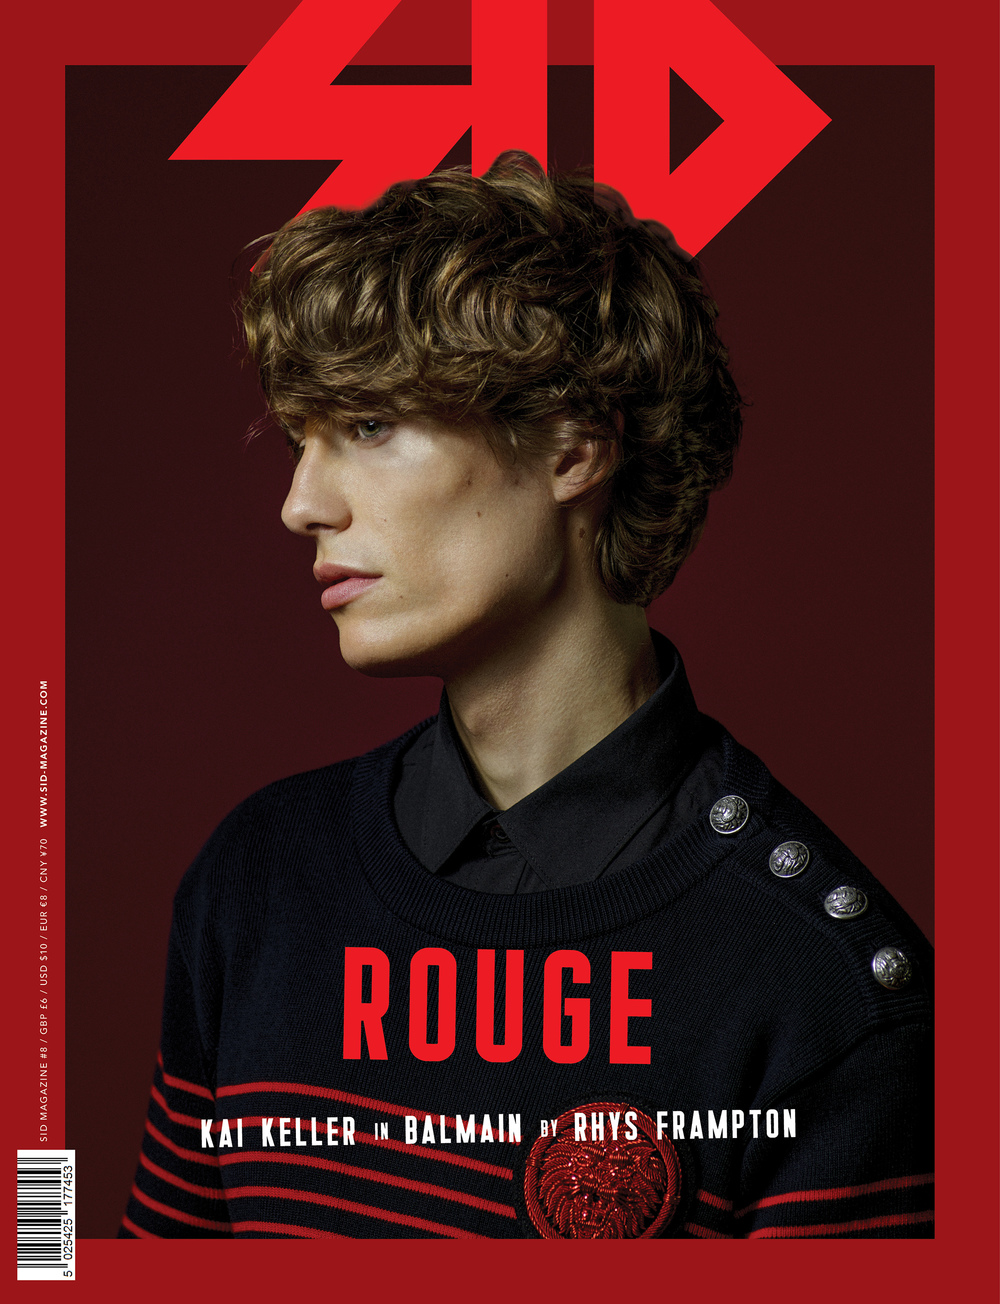 150529_SID8_Covers_ROUGE.jpg